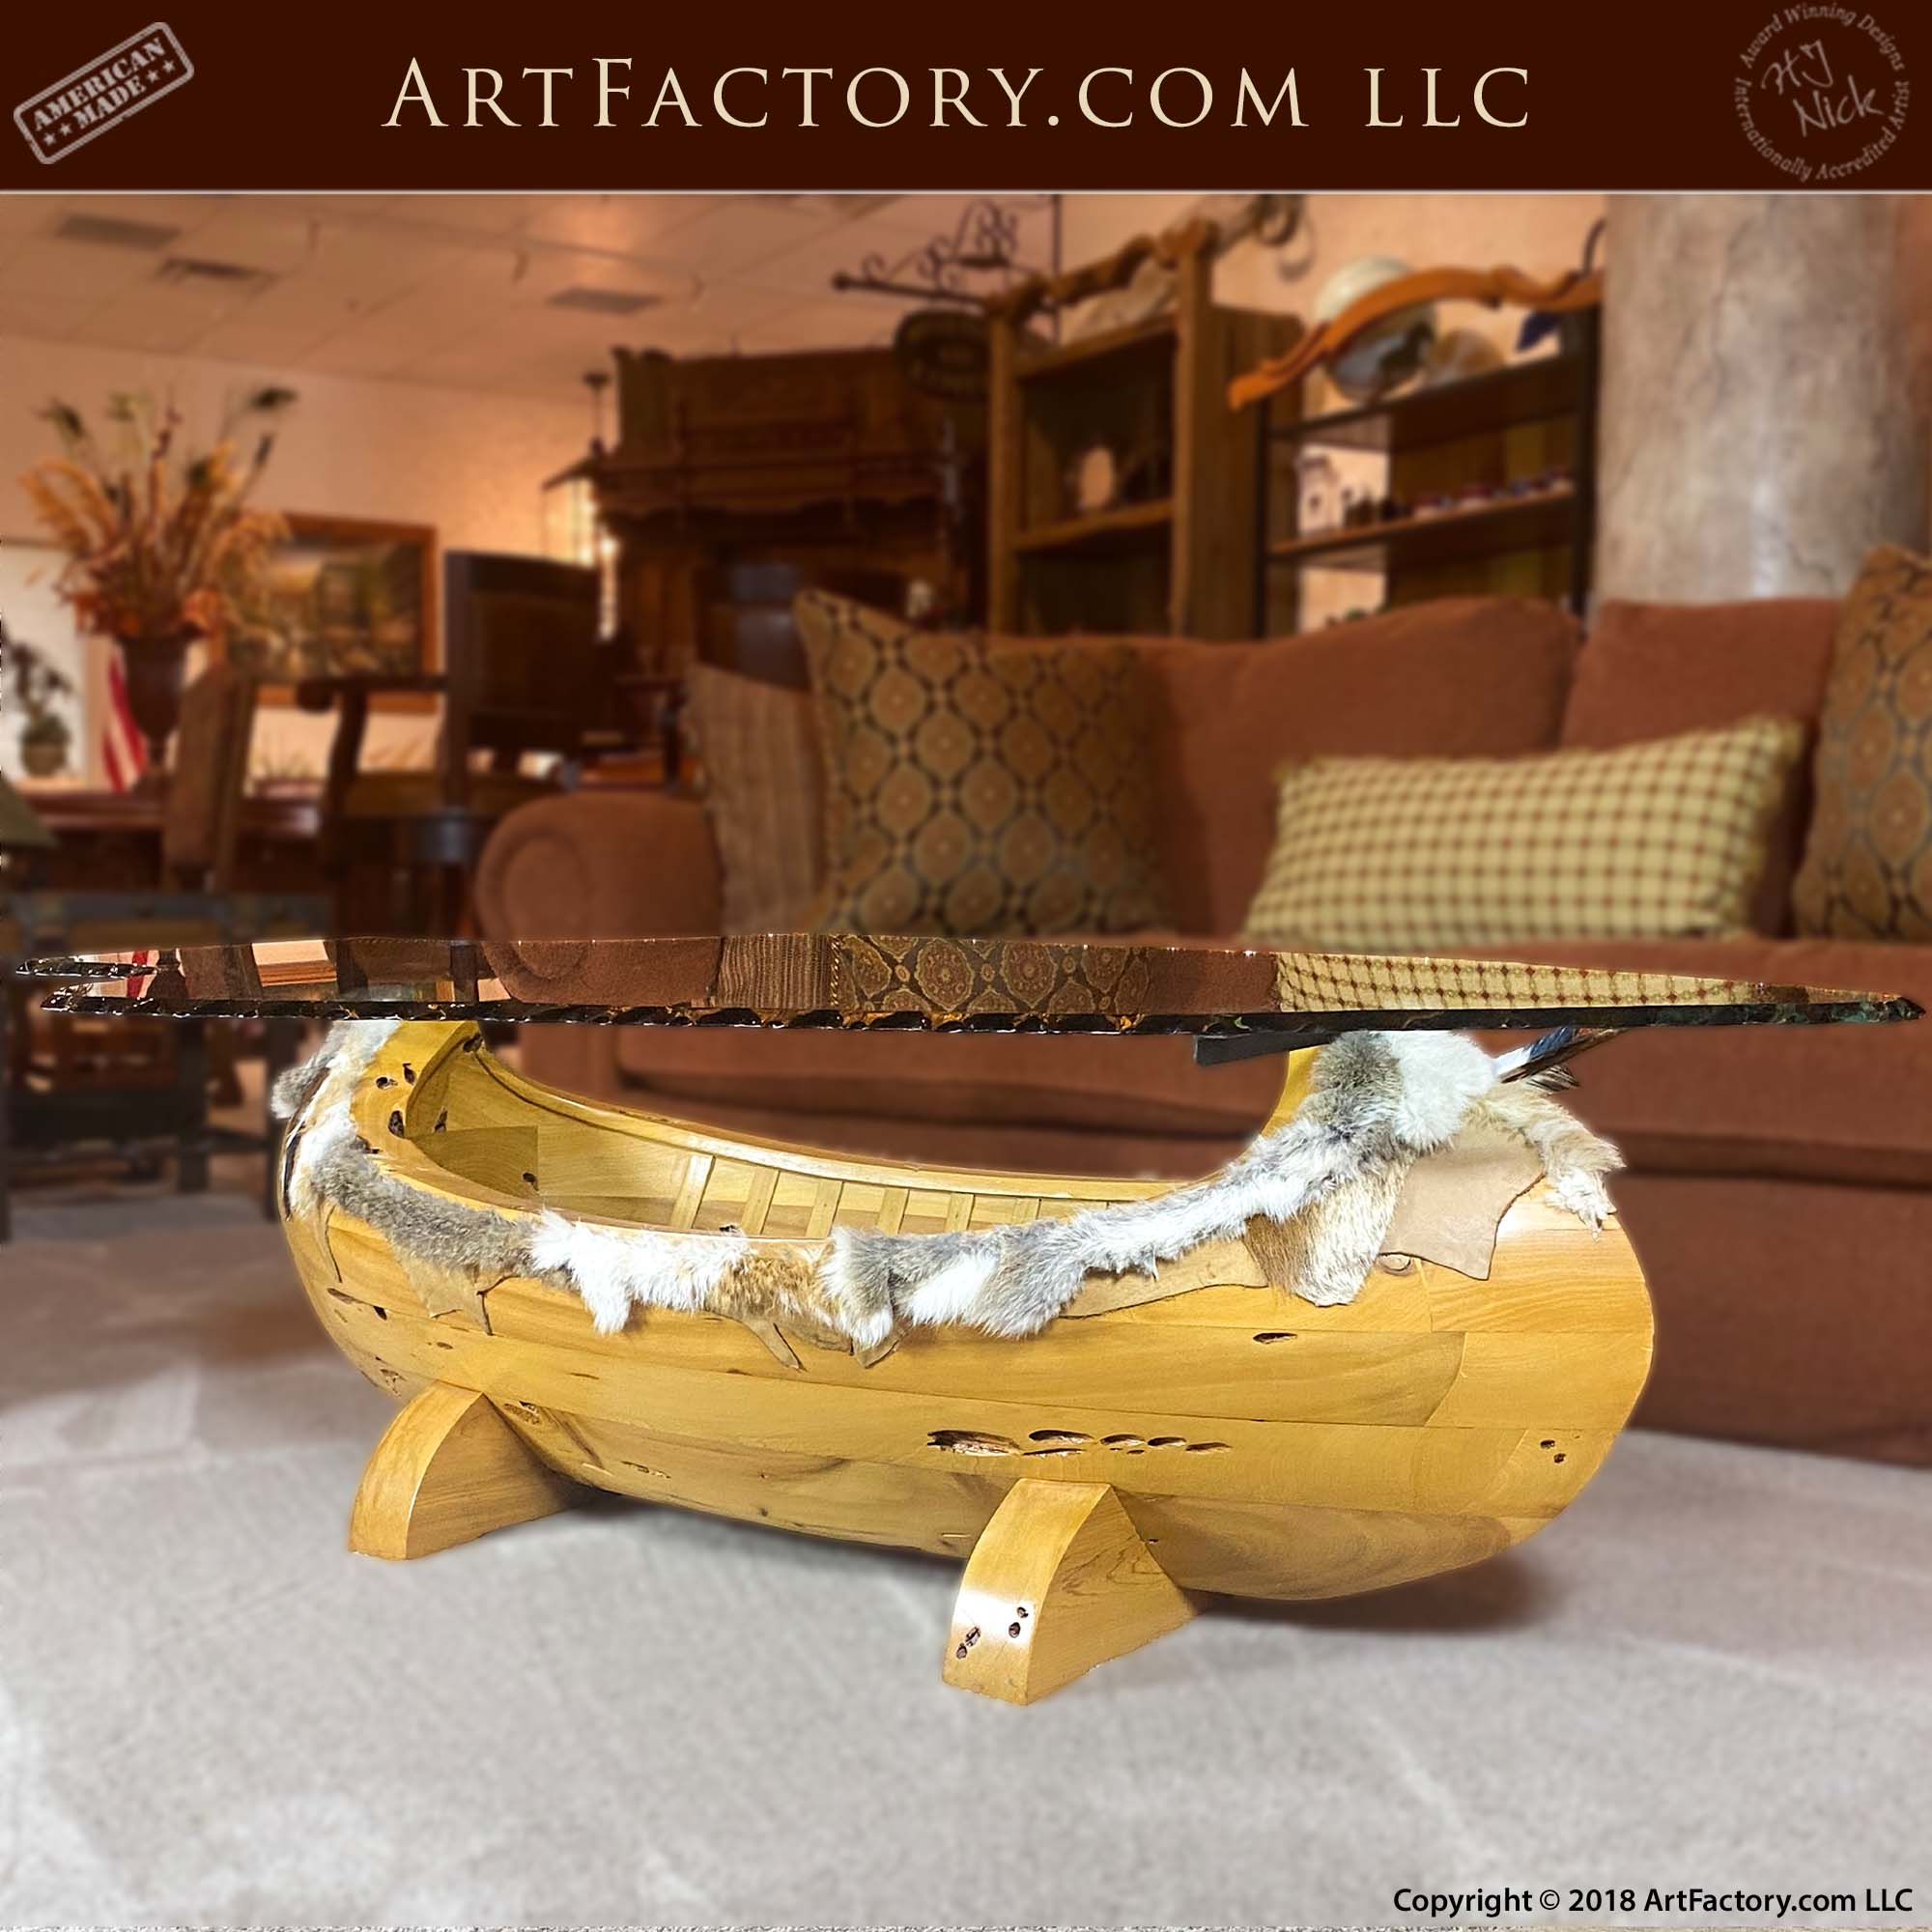 Arapaho Canoe Inspired Coffee Table: Fine Art Designs By H.J. Nick